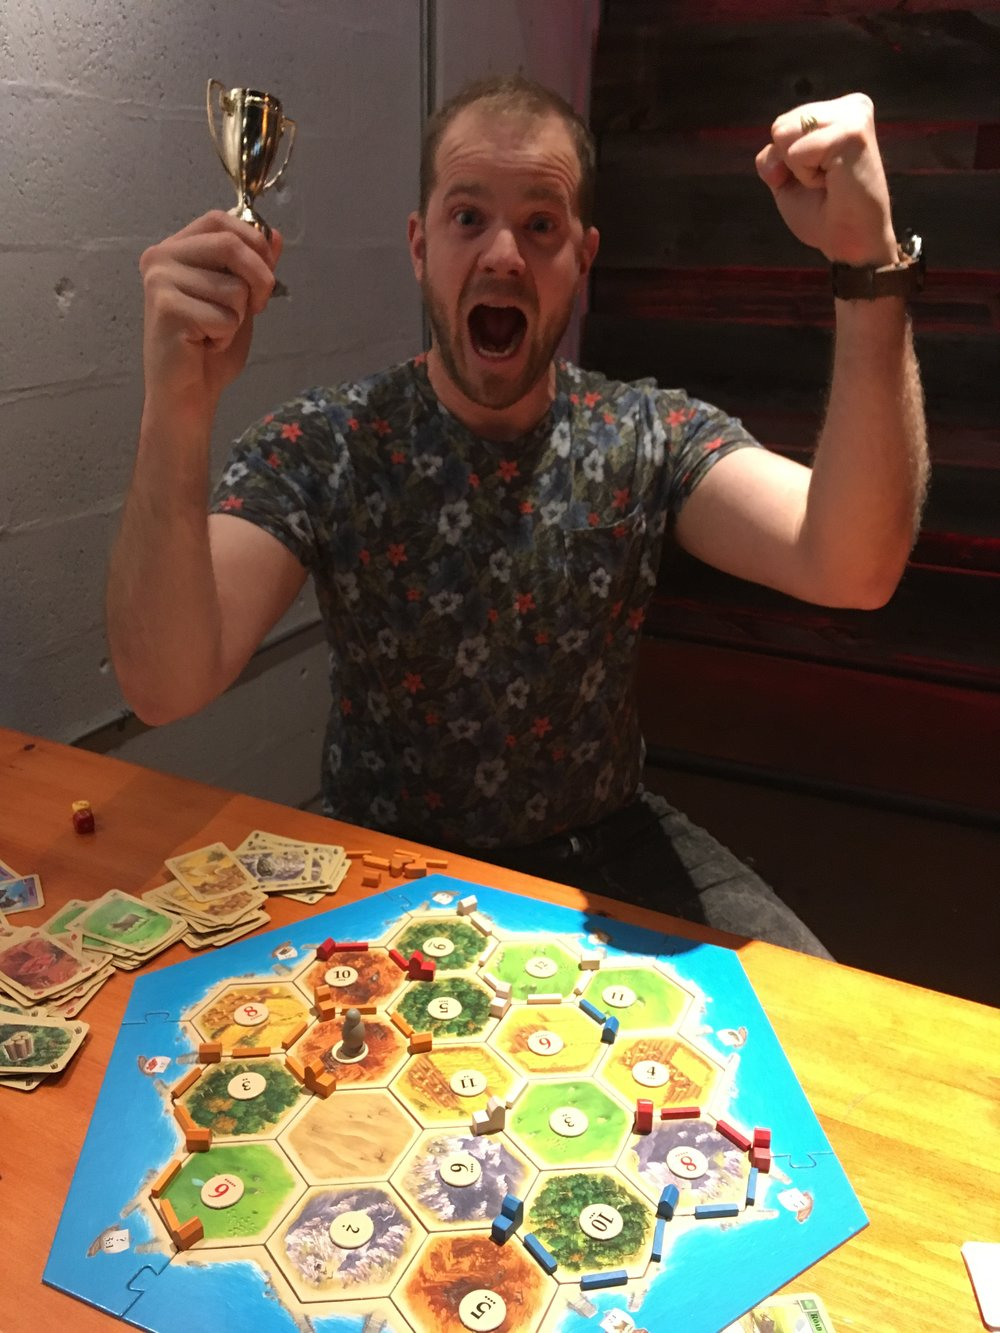 While his opponents were fighting over the largest army, Josh Wilson was staking out his victory. Our 2018 Settlers tourney featured a kid who could solve rubik's cubes in 50 seconds, a heated battle for a wild card entry into the finals that culminated with a barenuckled rock-paper-scissors match and, of course, plenty of sheep. But Josh Wilson won back-to-back games to emerge as our first tournament champion at Down the Road Brewery.